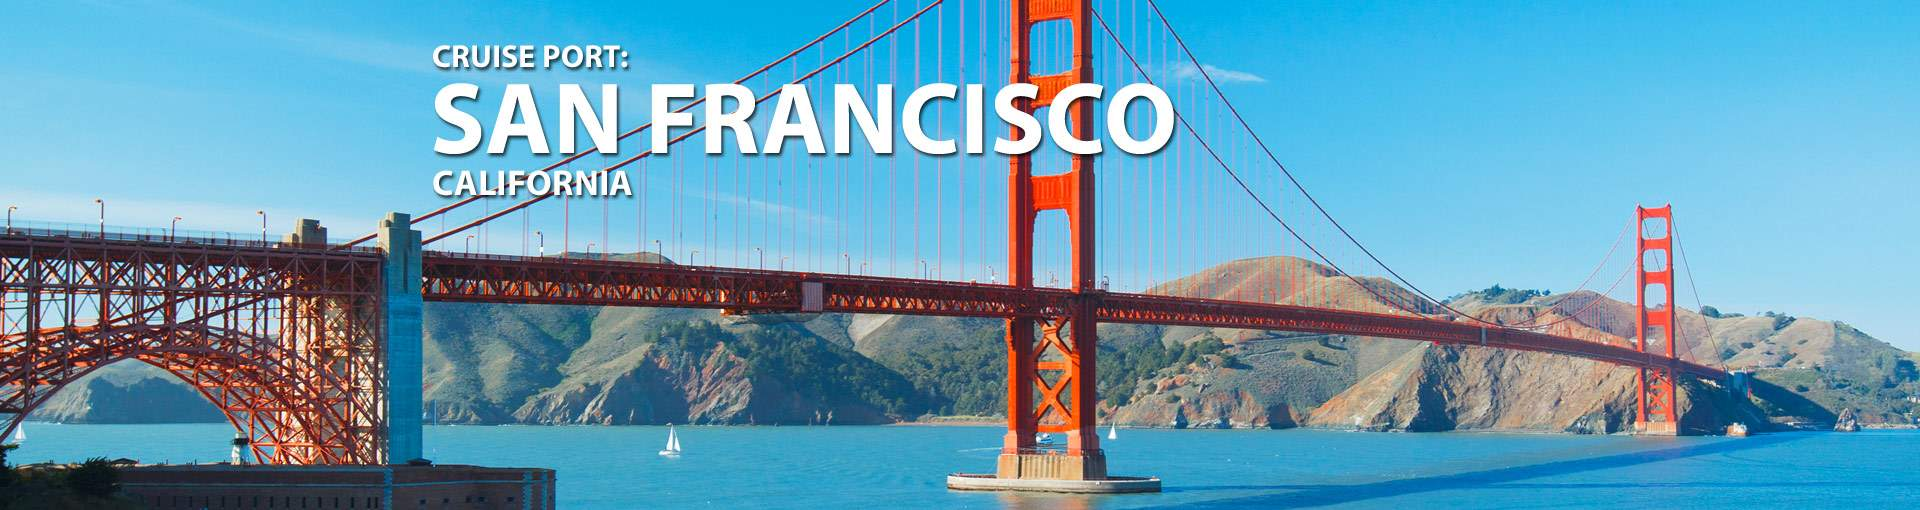 San Francisco California Cruise Port 2018 And 2019 Cruises From San Francisco California